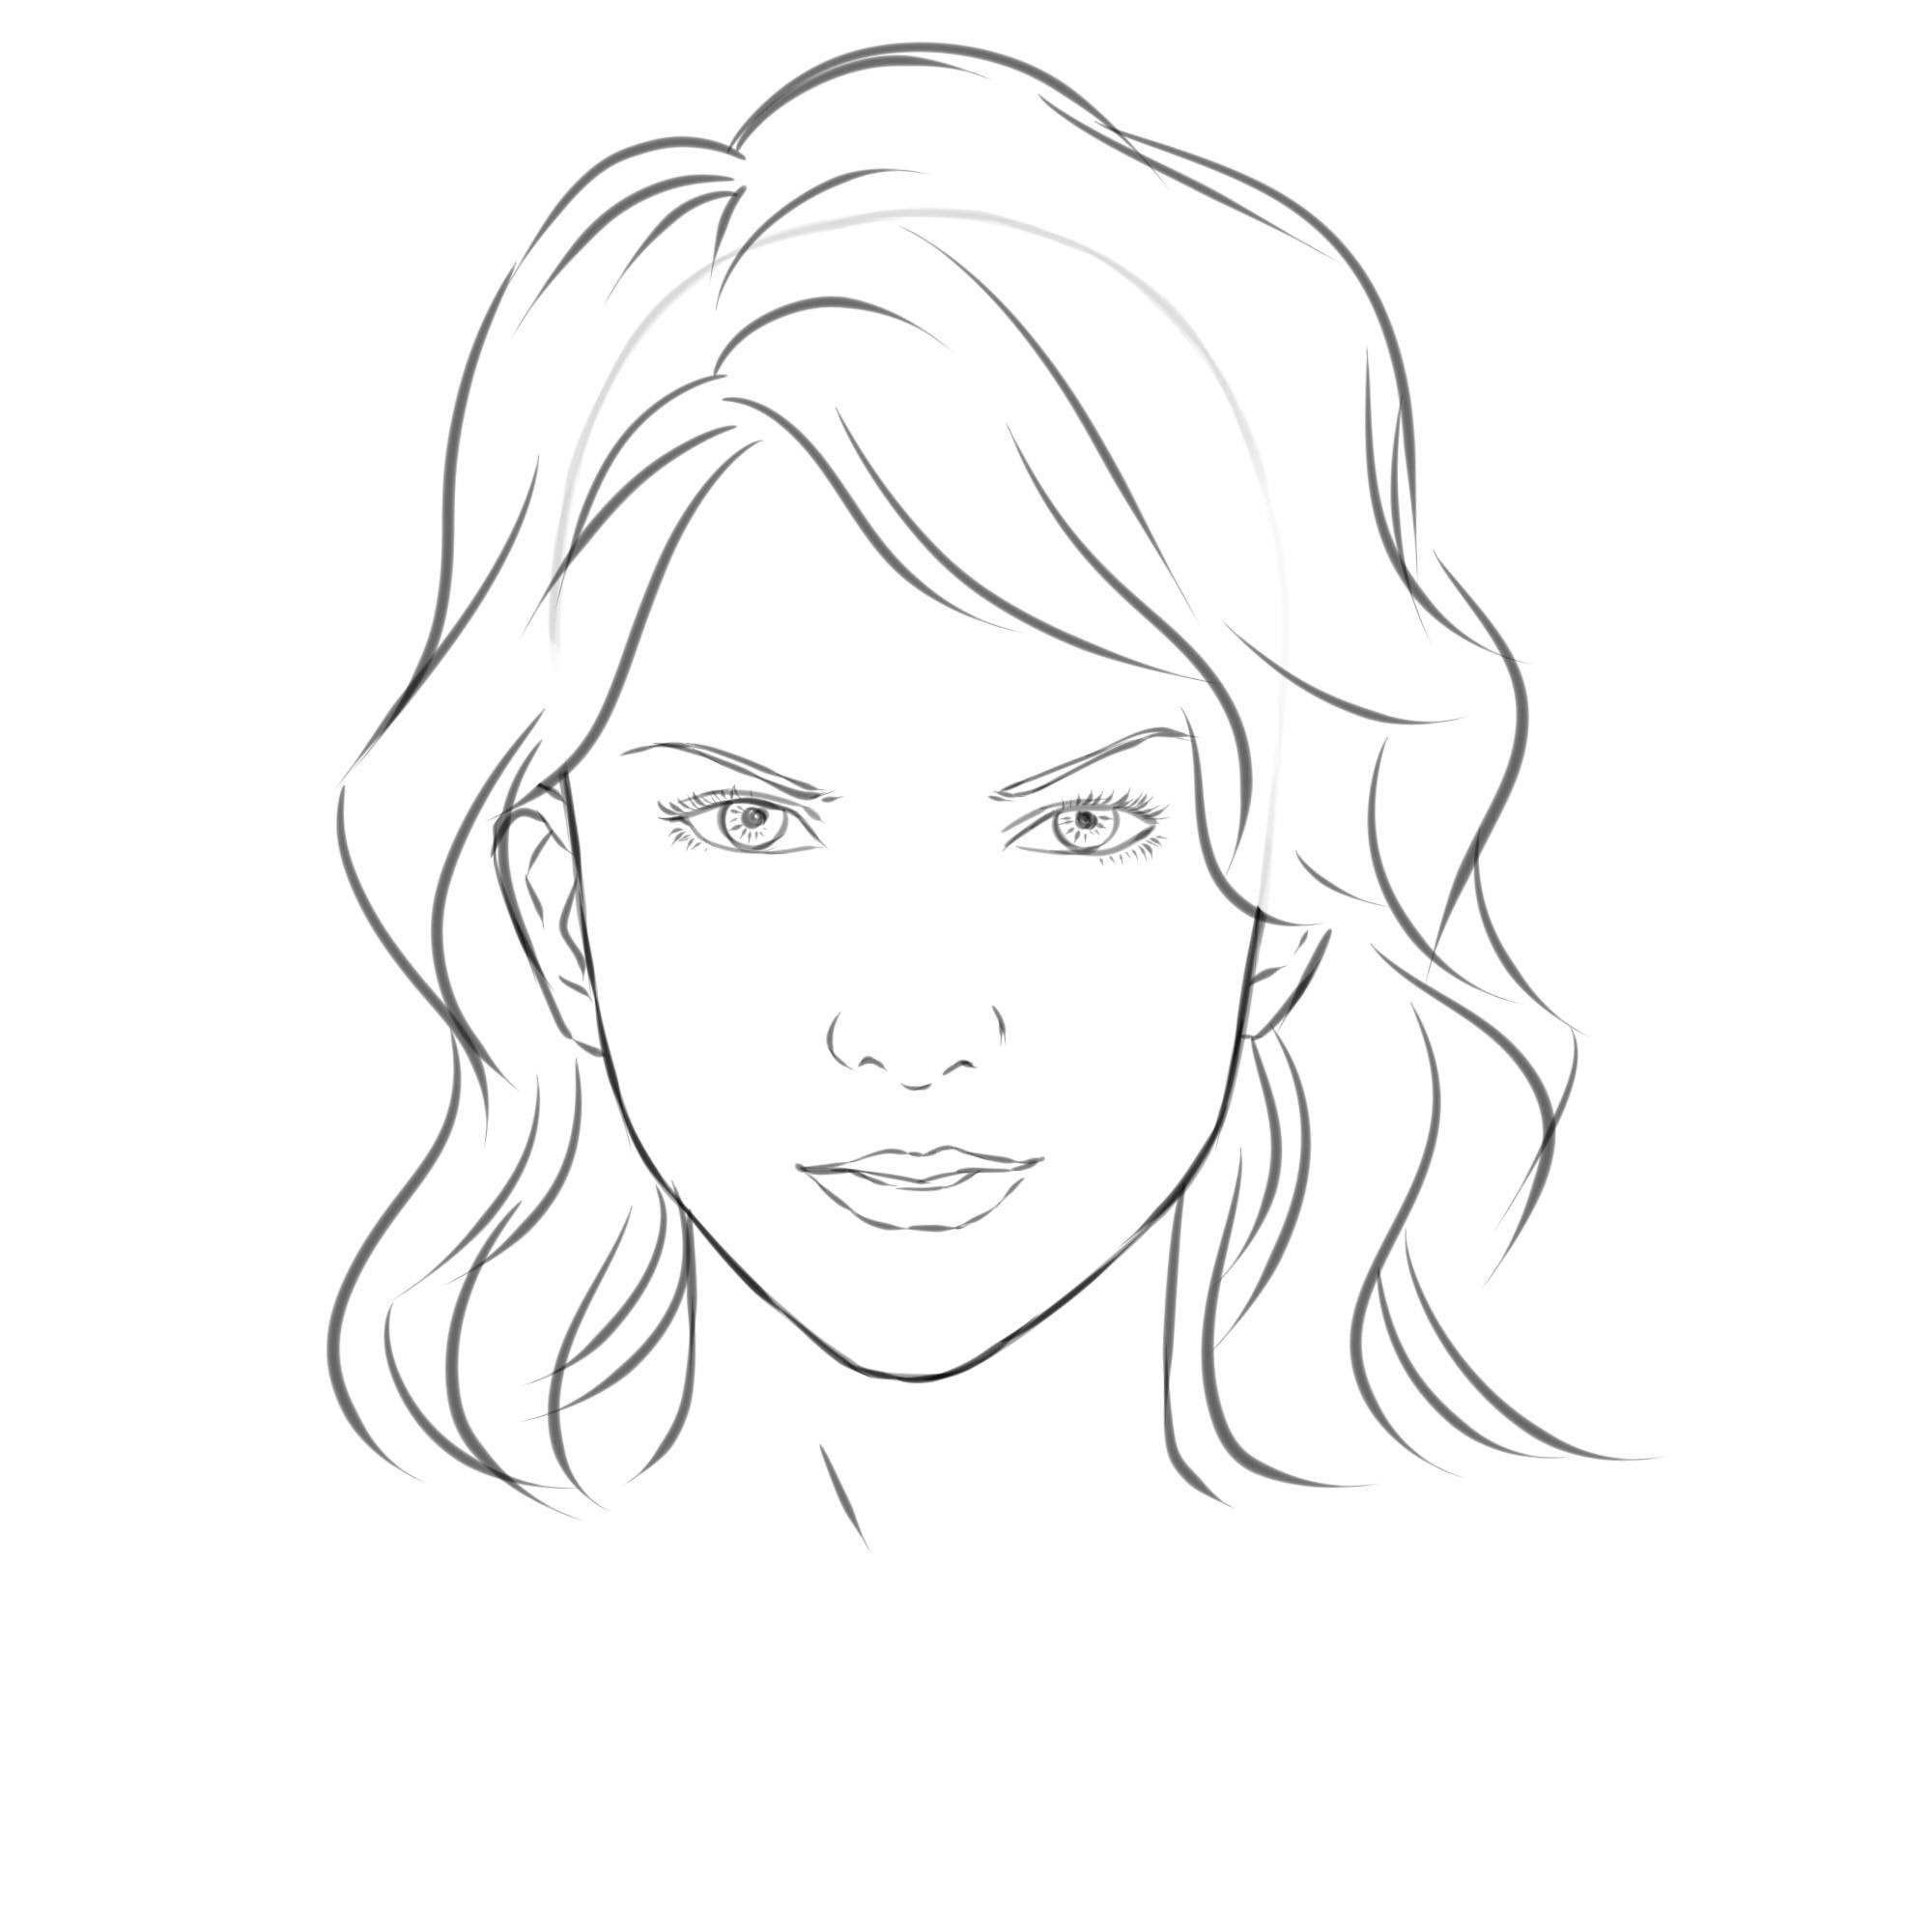 Free Easy Girl Drawing Download Free Clip Art Free Clip Art On Clipart Library